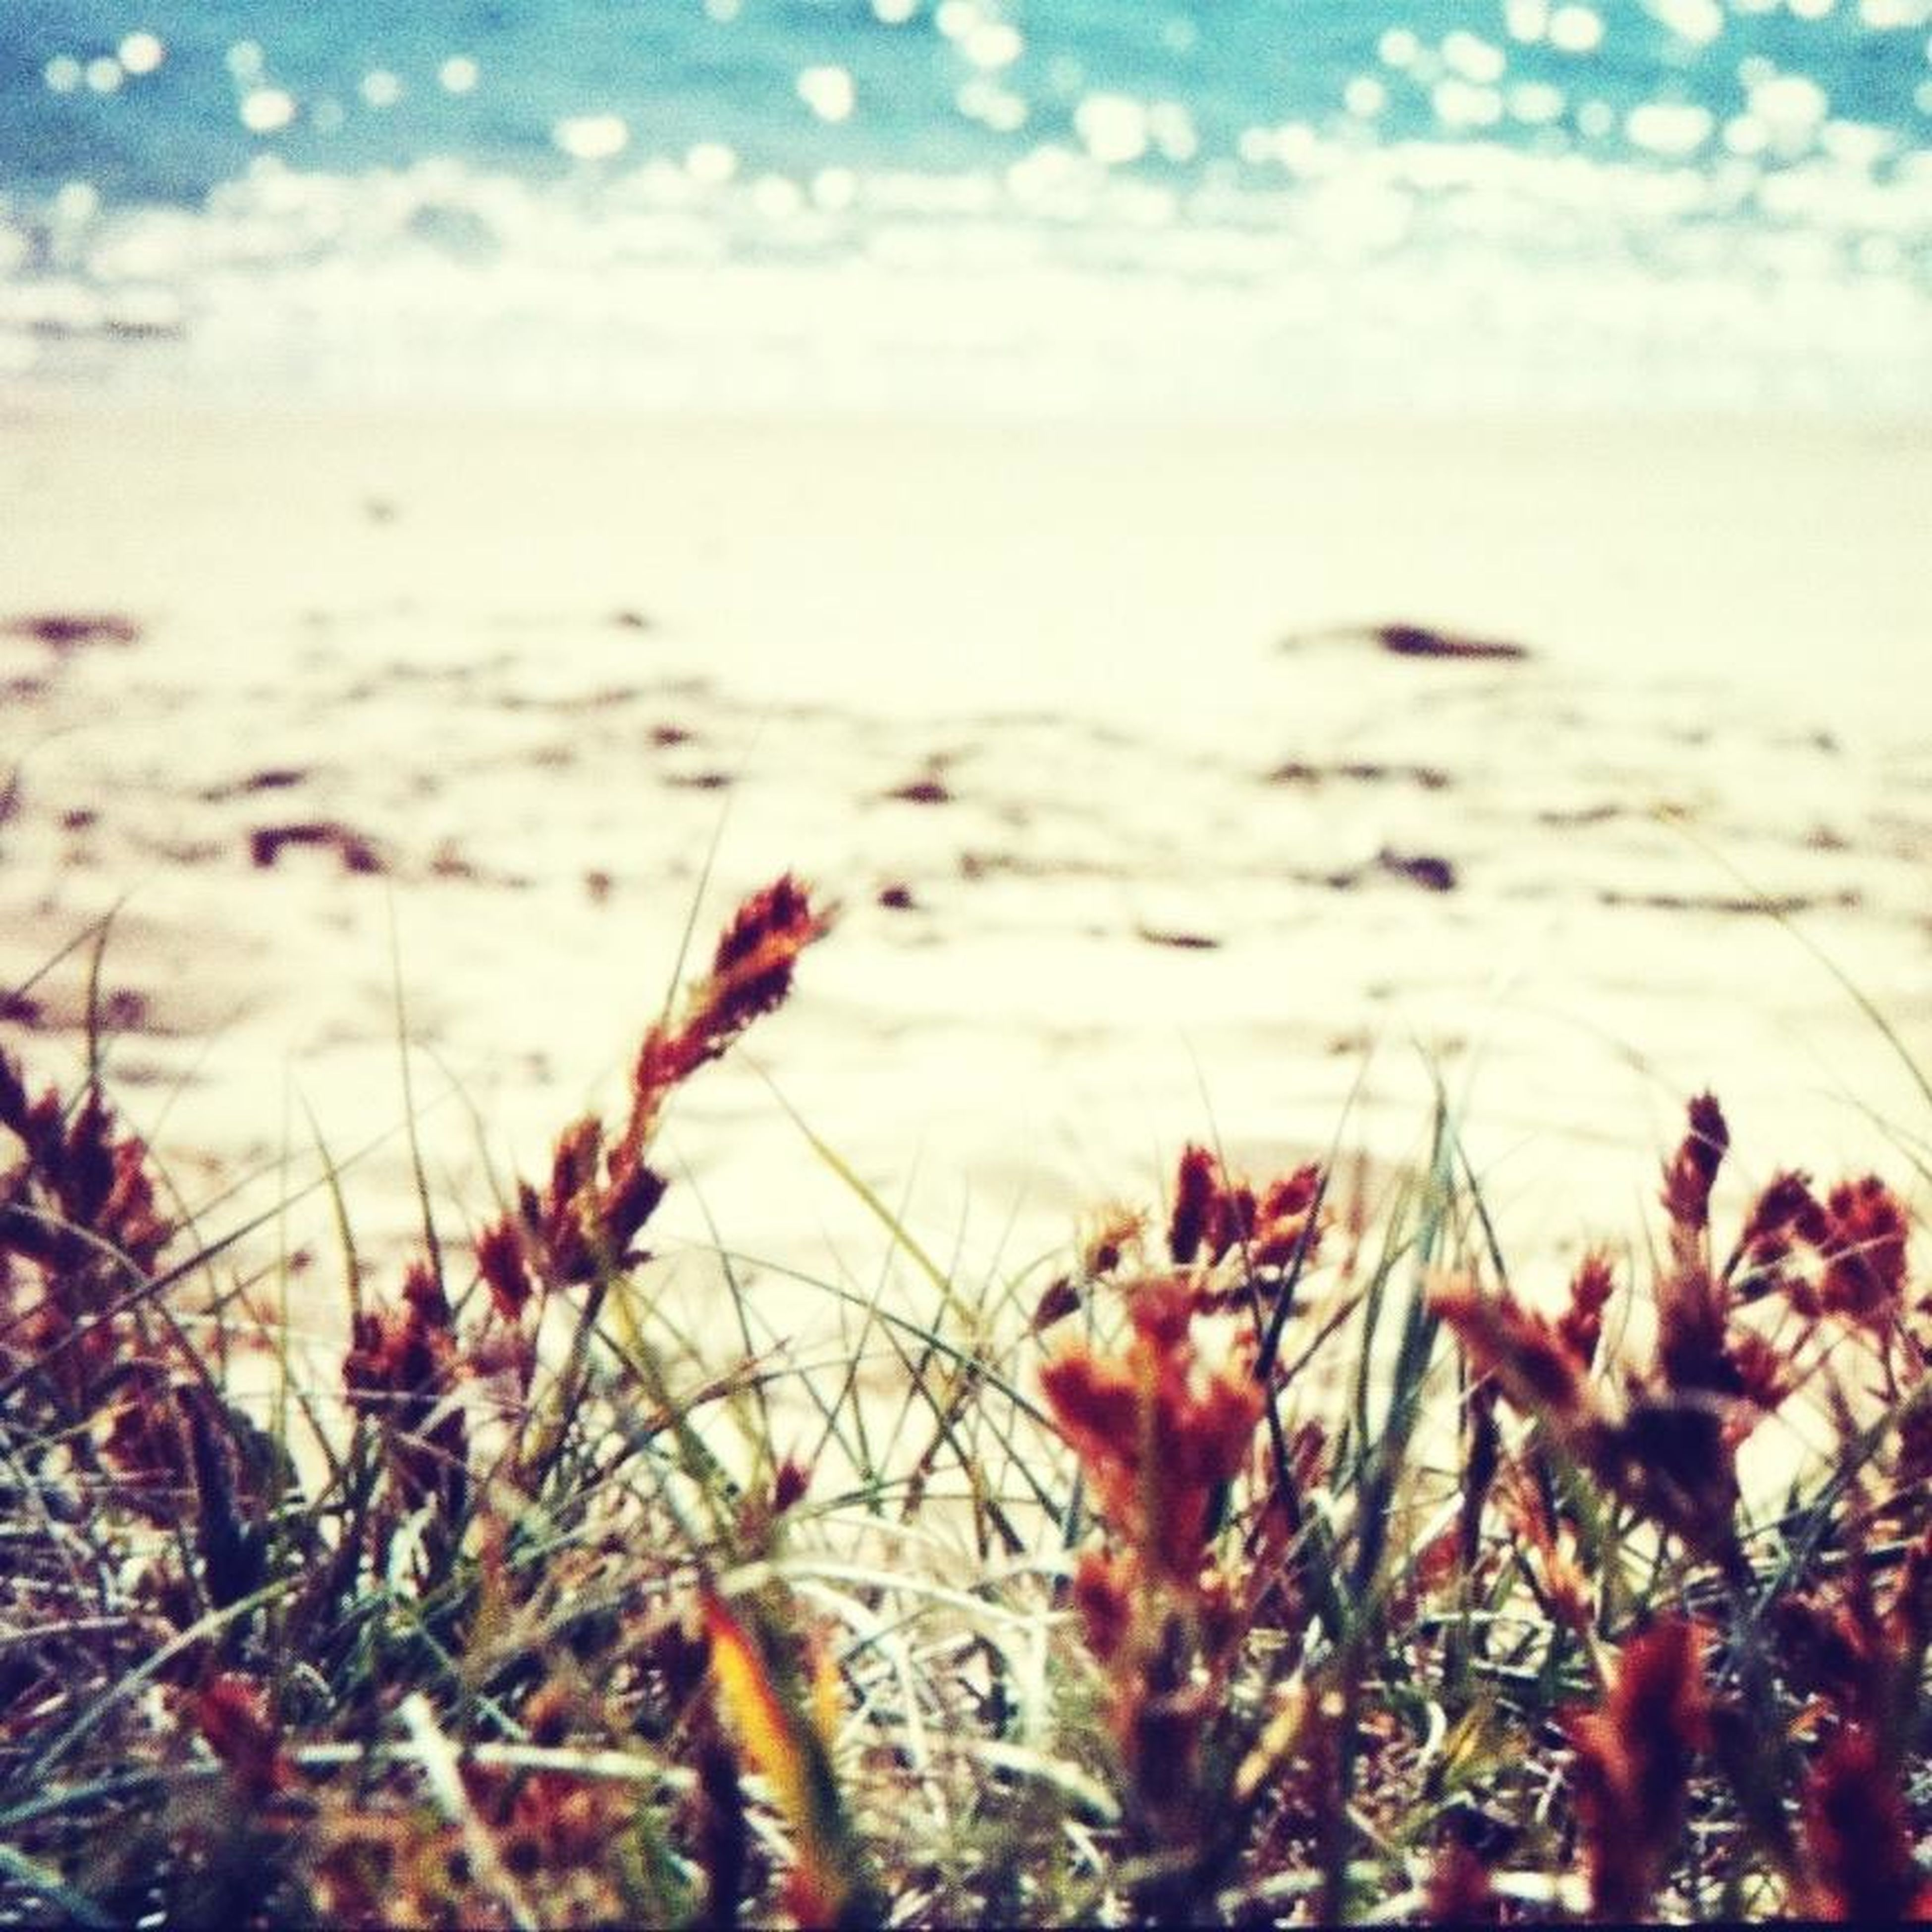 beauty in nature, flower, sea, plant, growth, nature, sky, water, tranquility, focus on foreground, horizon over water, beach, close-up, freshness, tranquil scene, scenics, fragility, growing, cloud - sky, selective focus